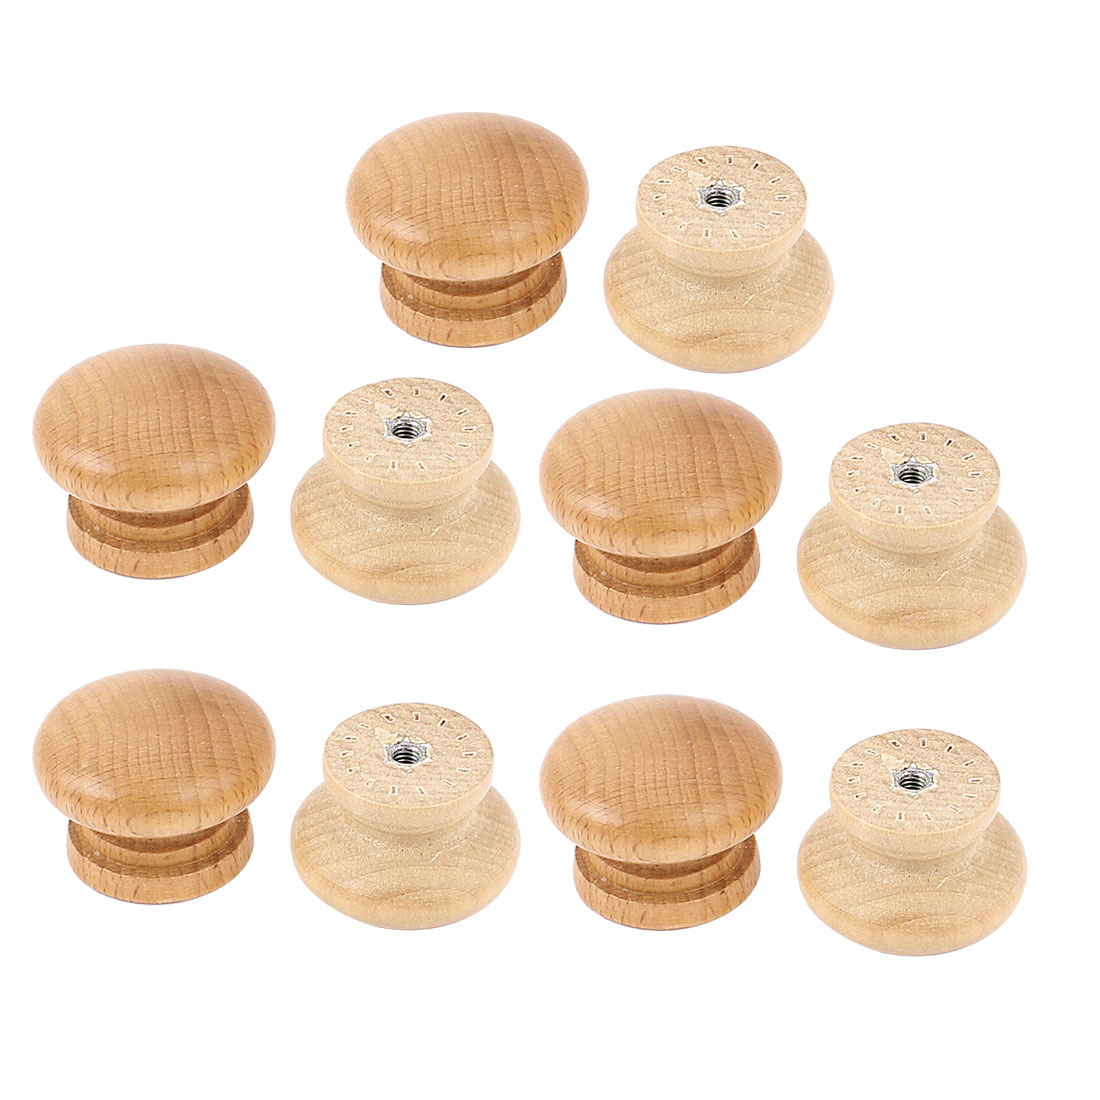 Unique Bargains 10 Pcs Hardware Wooden Door Knob Wardrobe Cabinet Kitchen Drawer Pull Handle